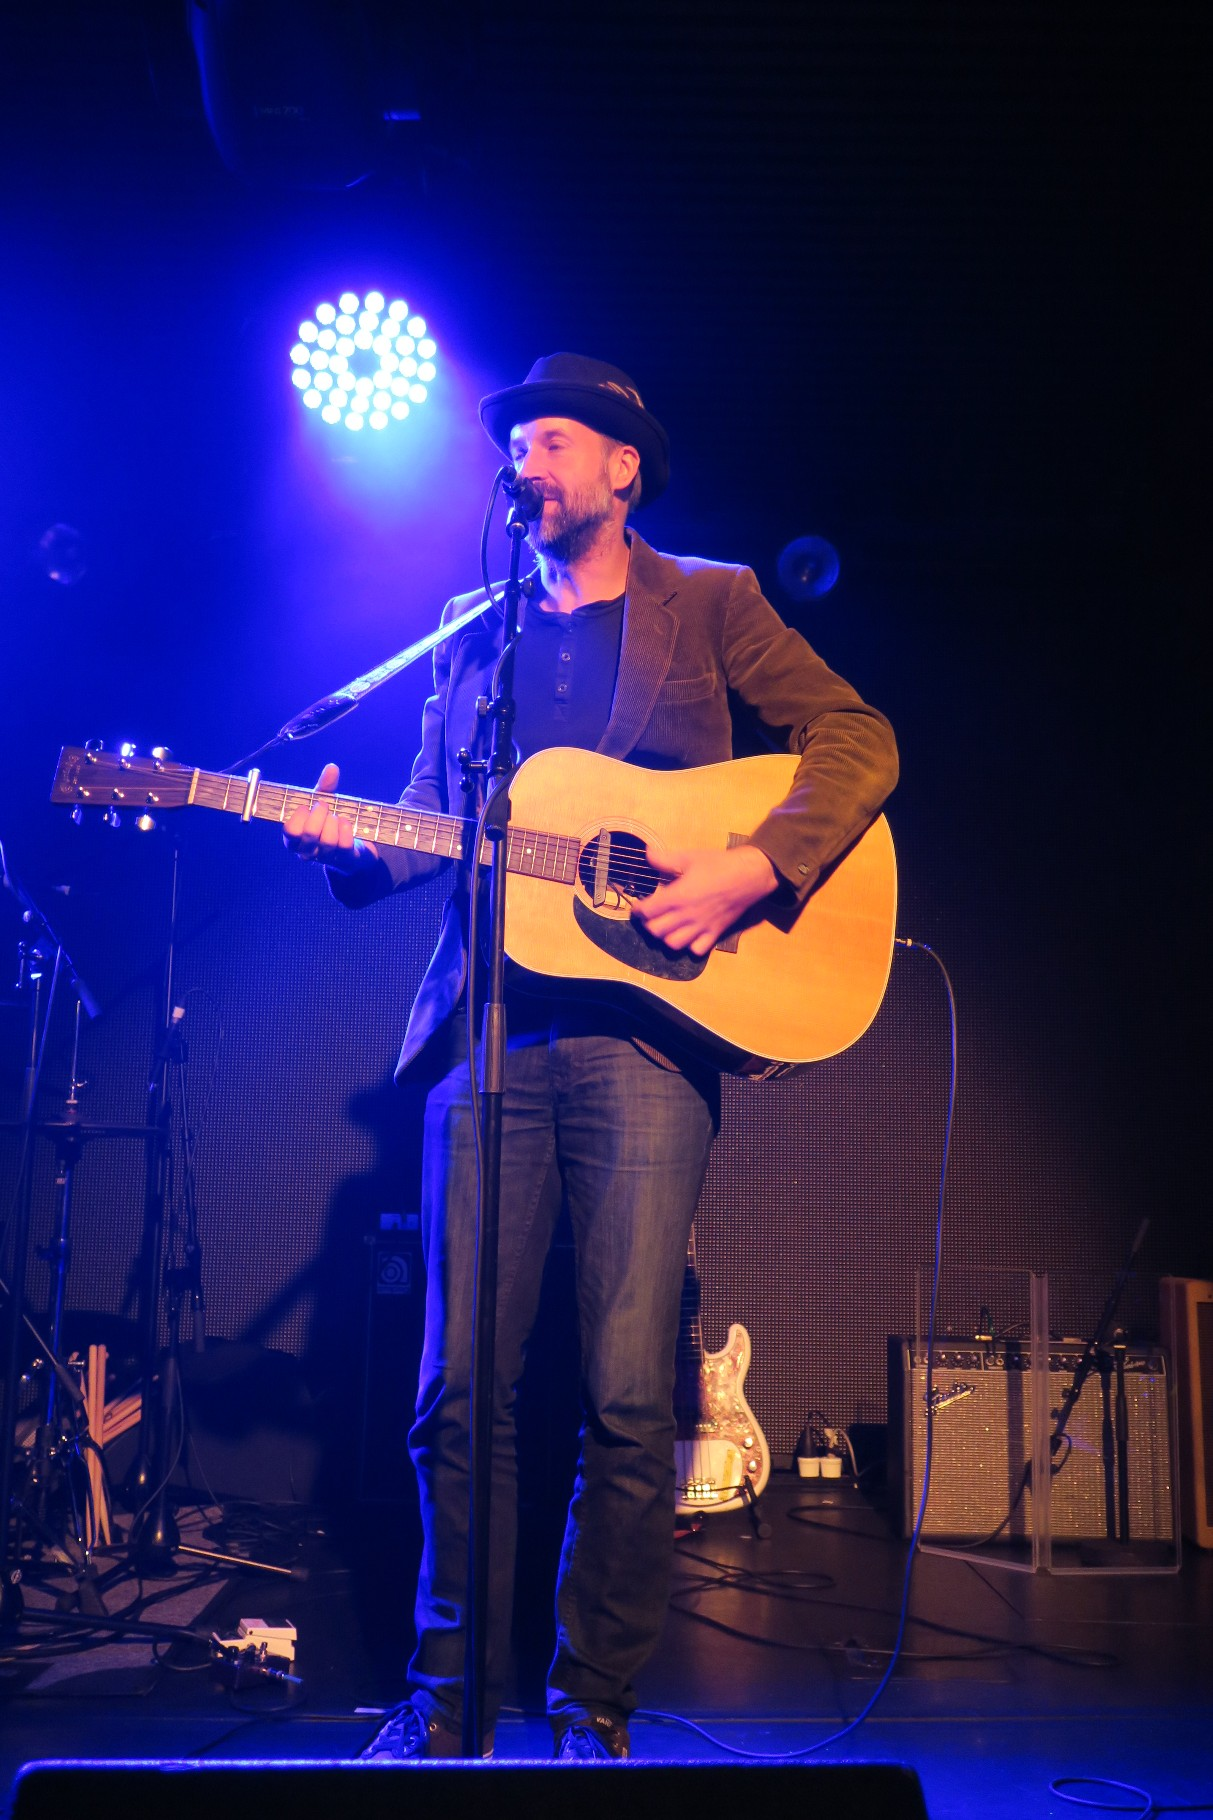 Jon Allen – Under The Bridge, London, 27 May 2017